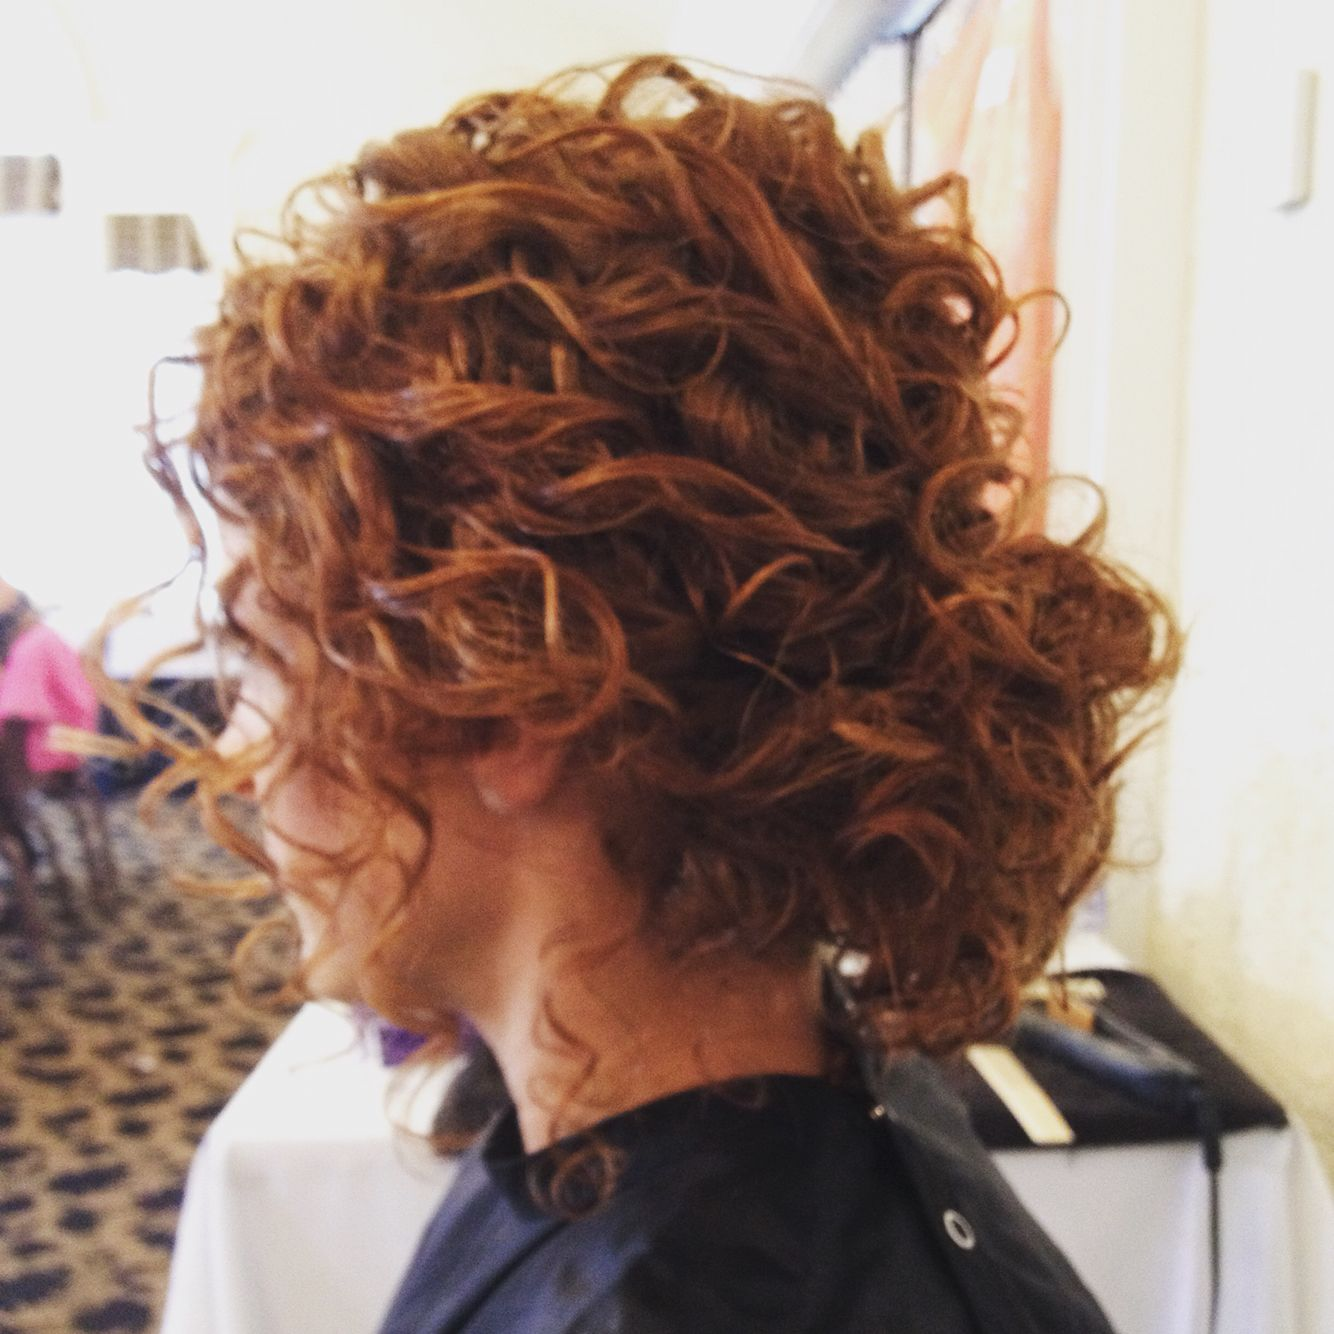 naturally curly hair low bun updo | hair | curly hair styles